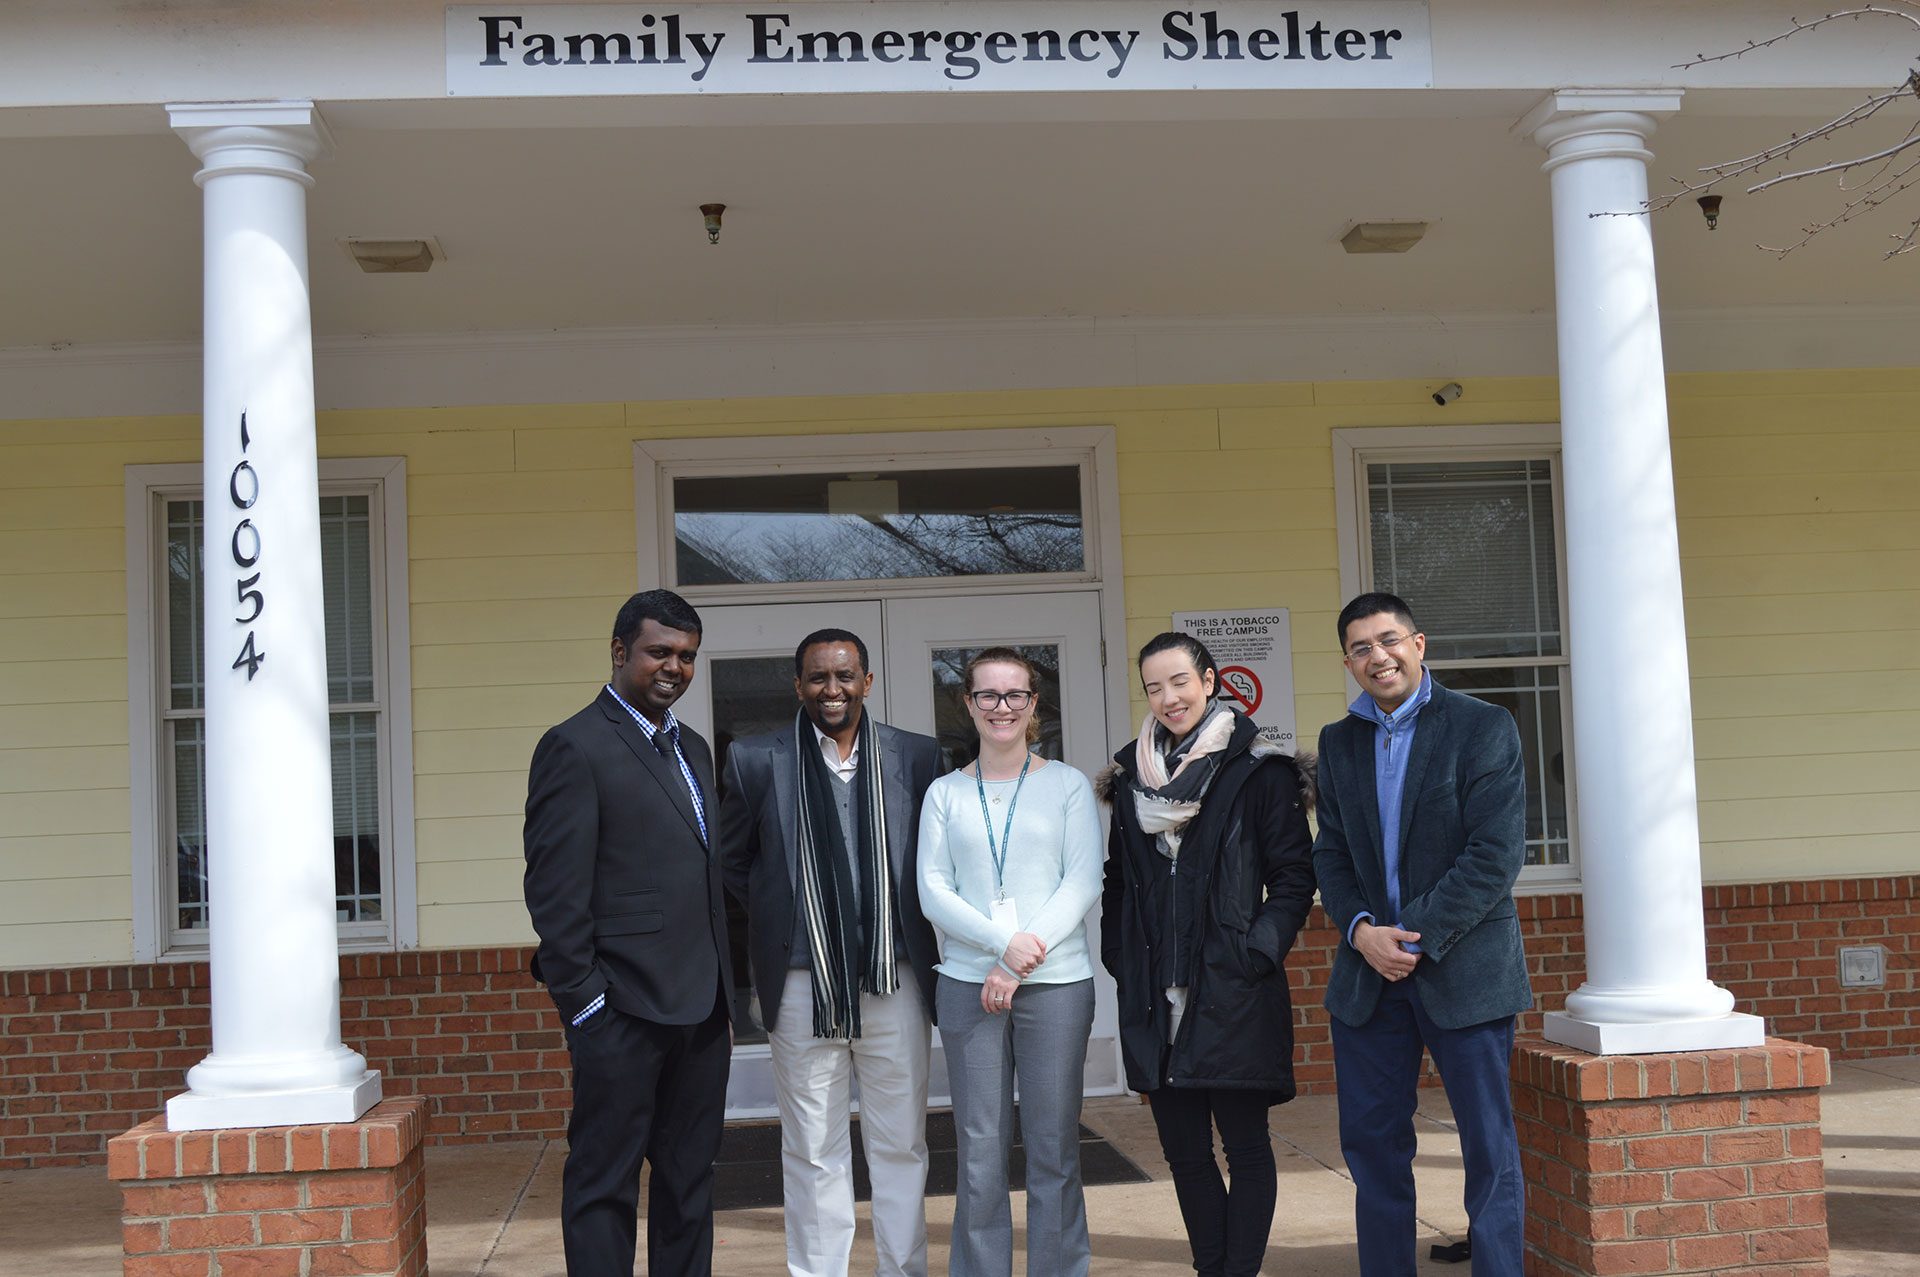 Northern Virginia Family Service (NFVS) shelter